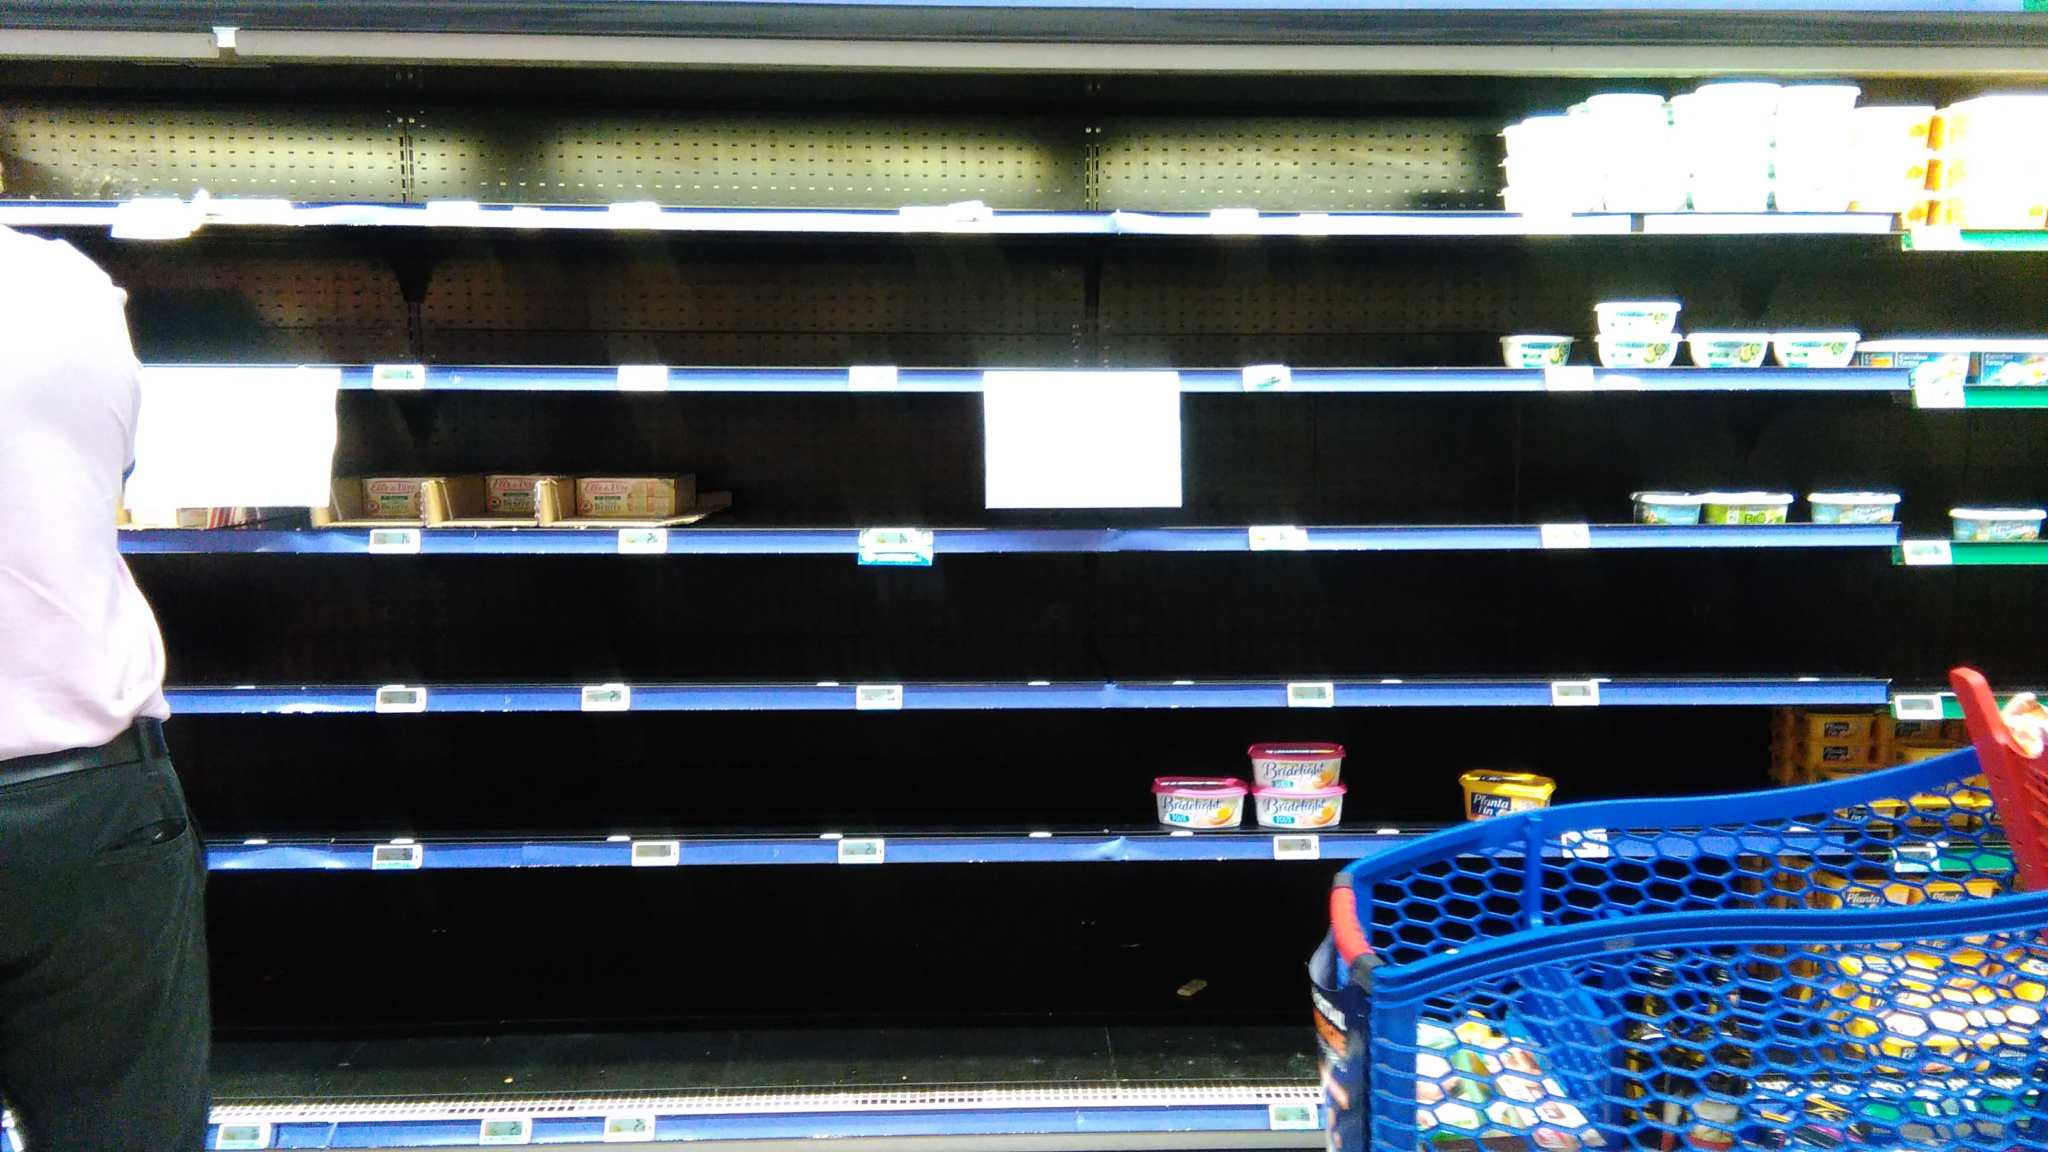 Carrefour empty selves no butter in France